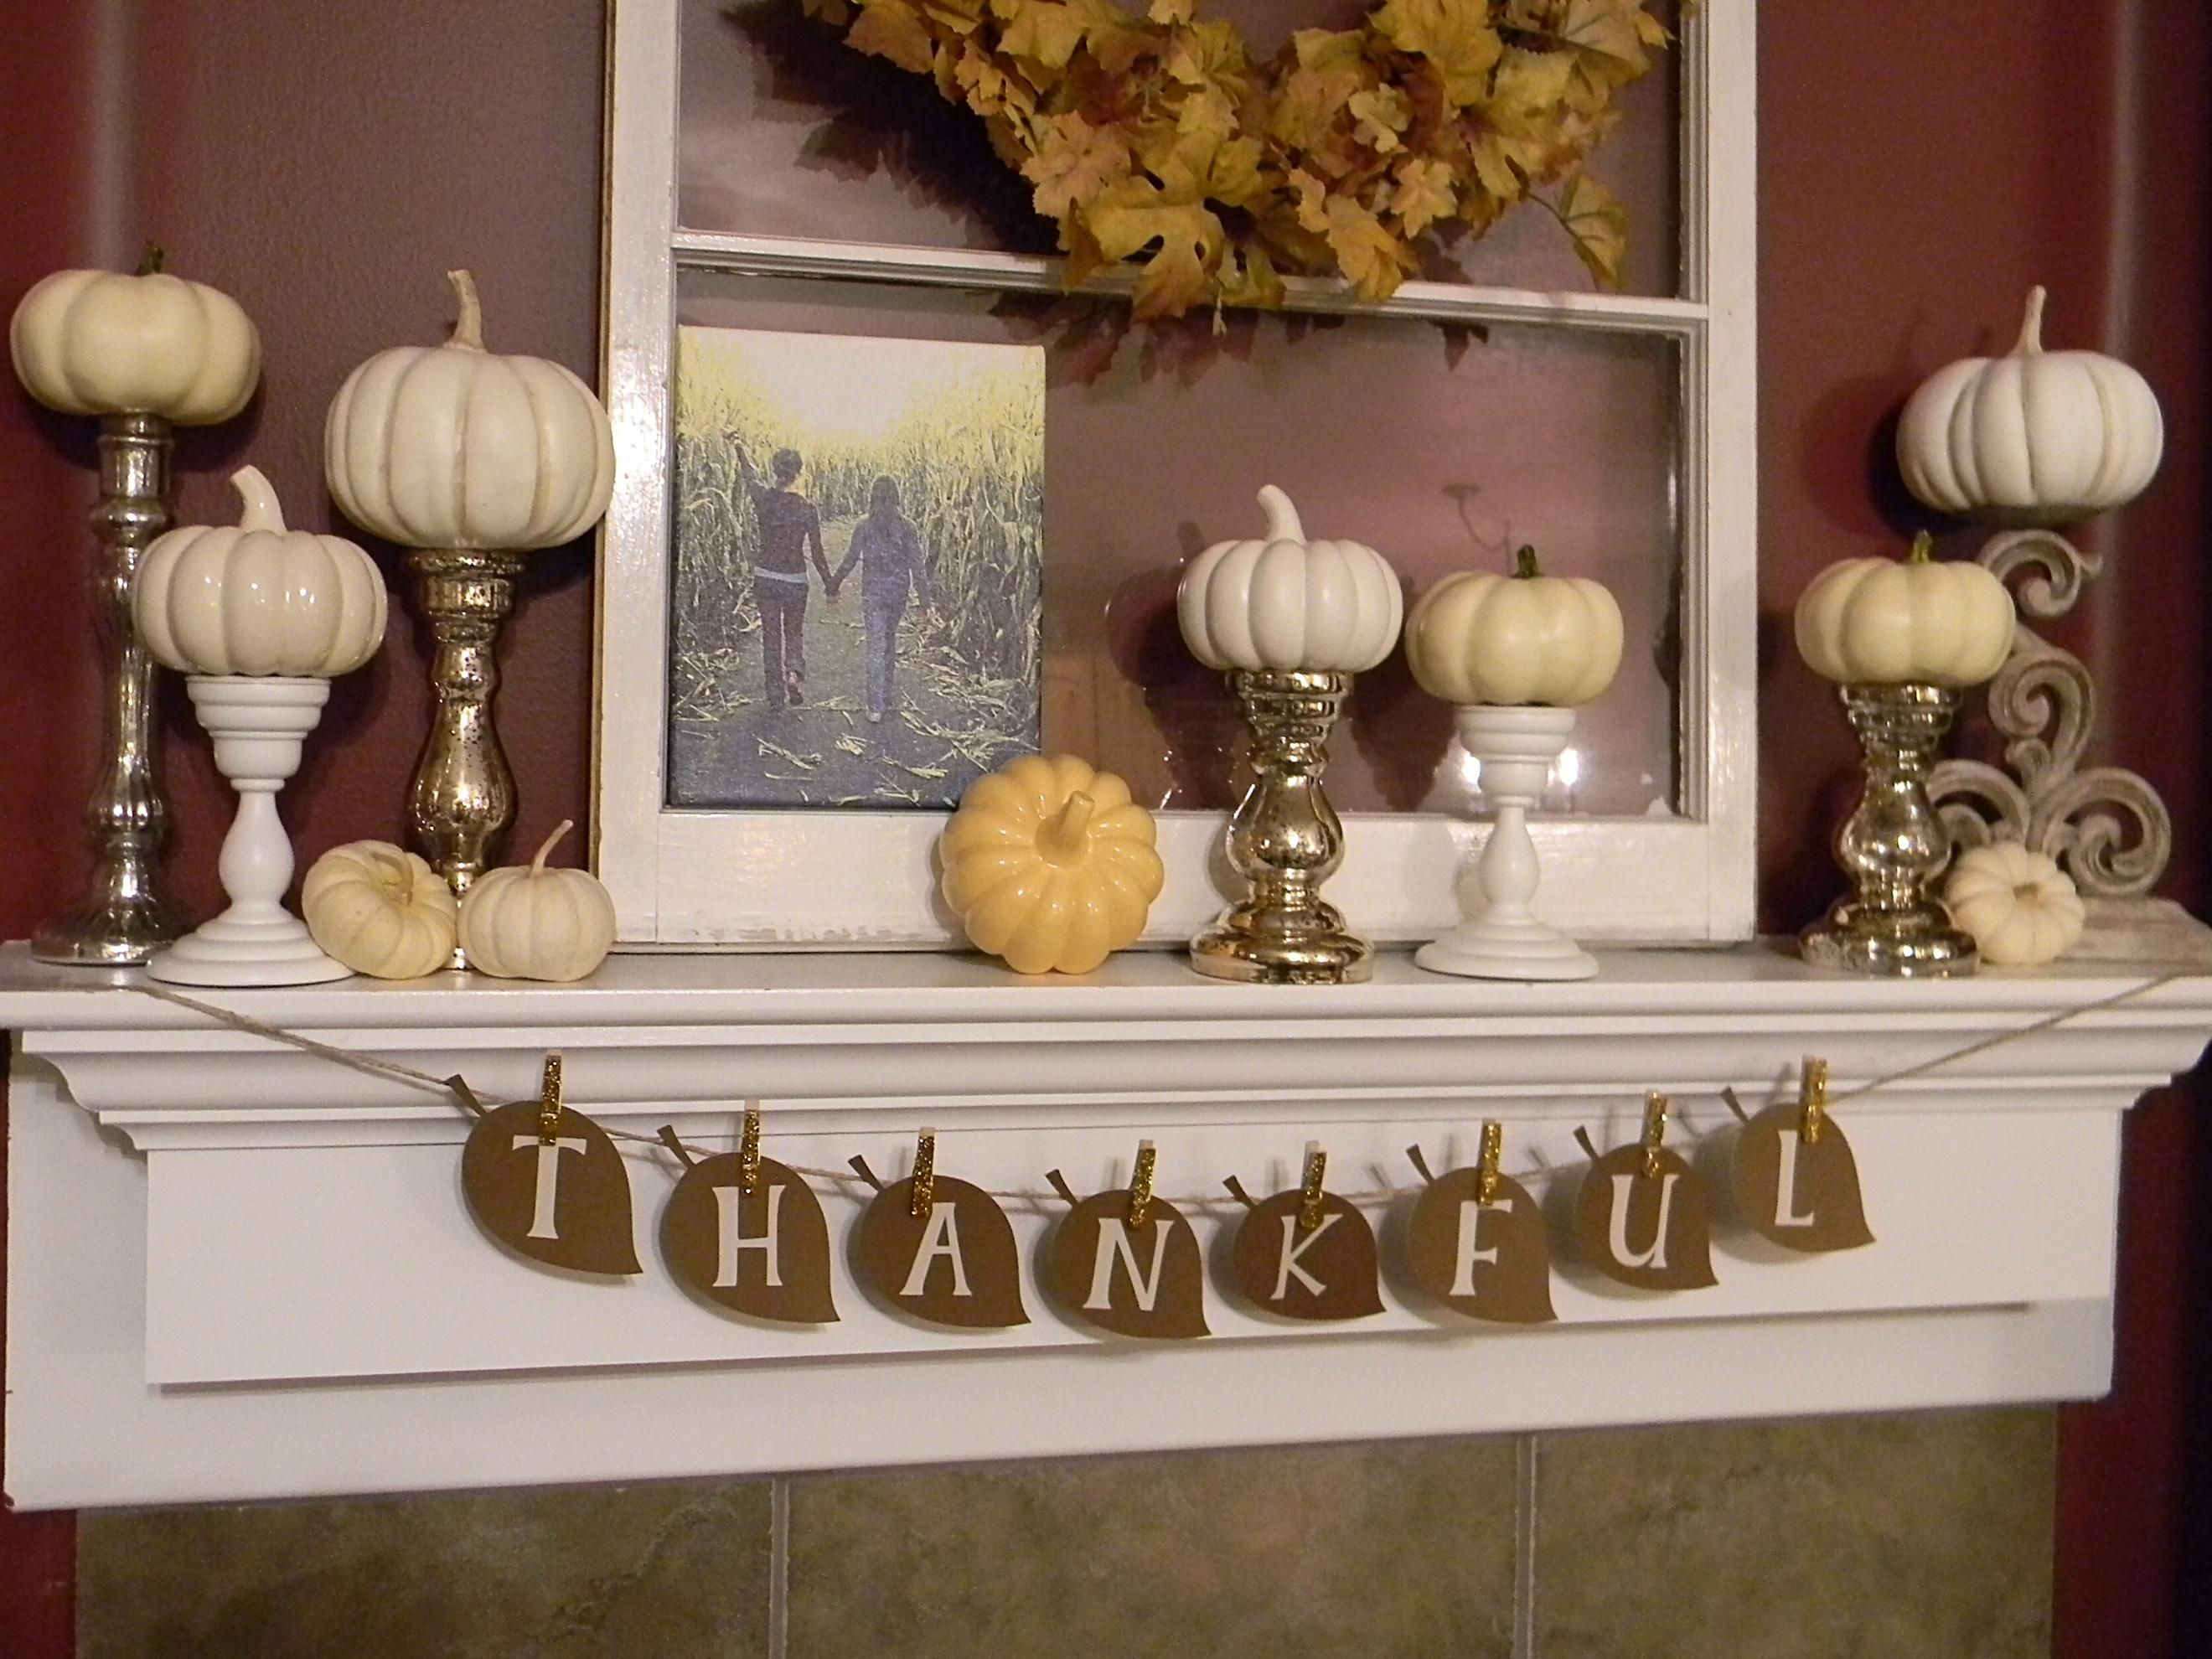 Mantel  Decorations : IDEAS & INSPIRATIONS :Thanksgiving Mantel Ideas  Decorating for Fall